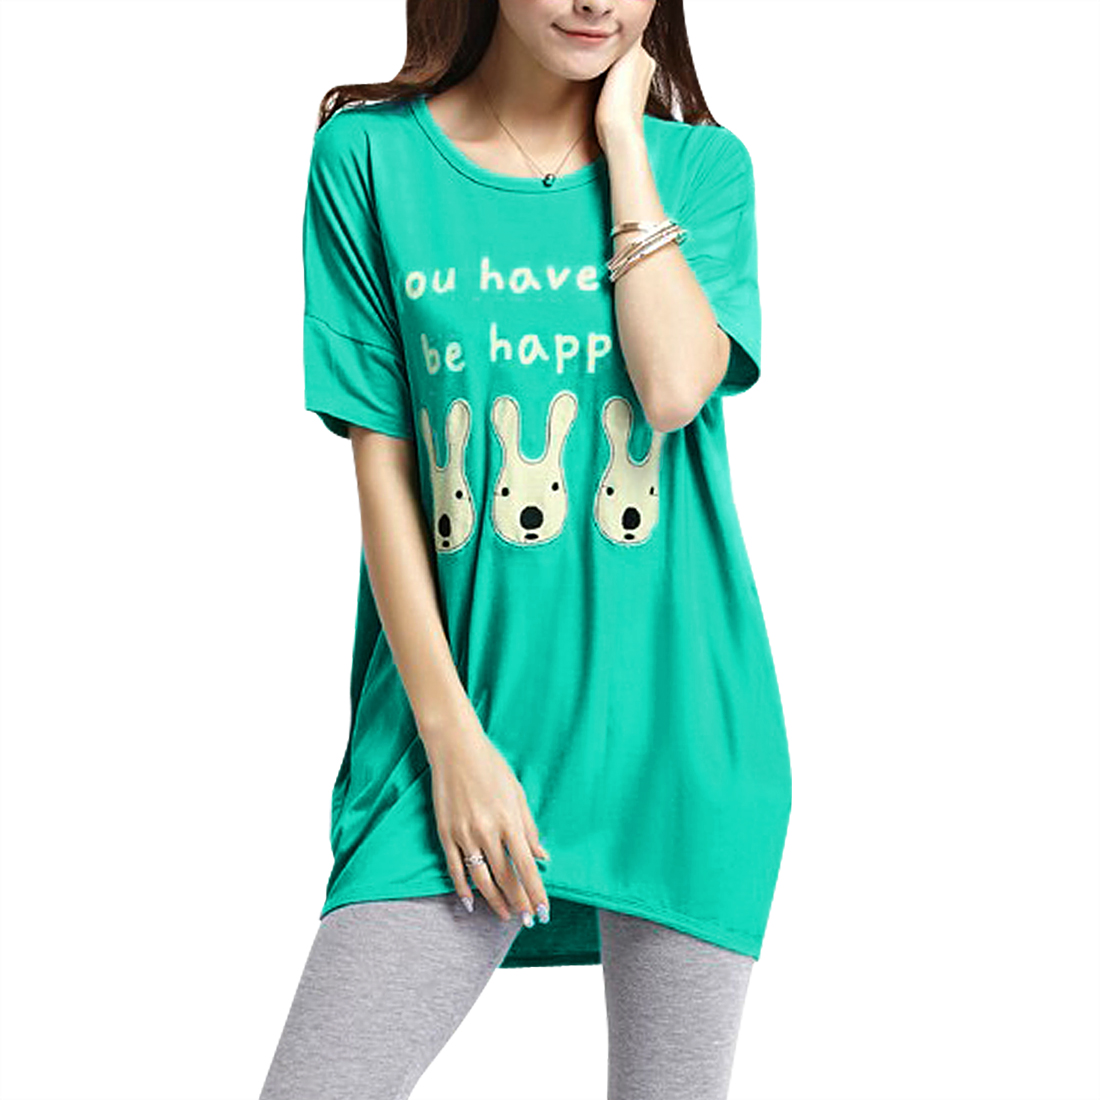 Women's Casual Letters Pattern Pullover Tunic T-Shirt Green (Size M / 8)